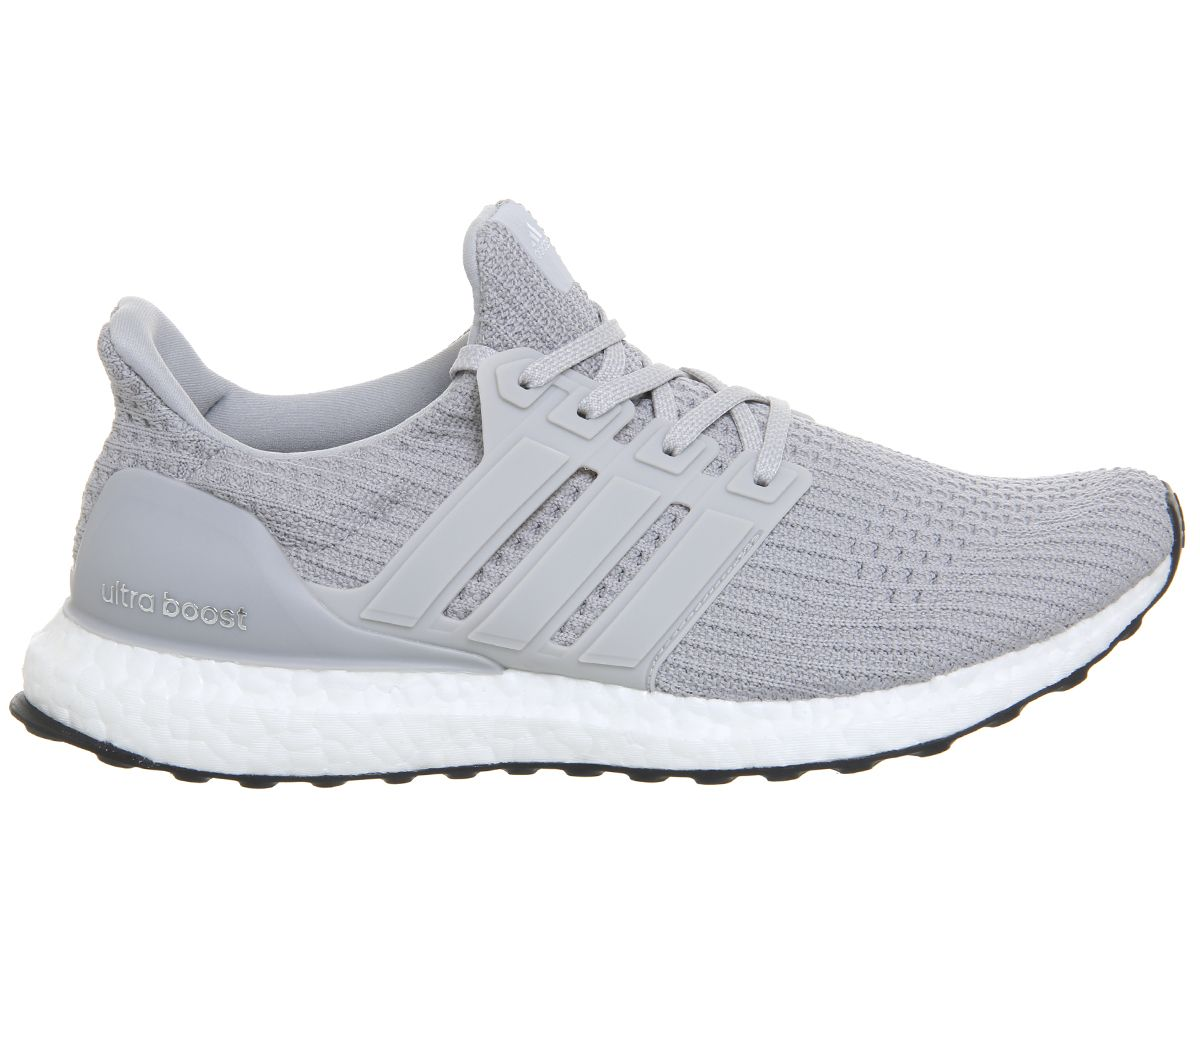 6a39fe974 Sentinel Adidas Ultraboost Ultra Boost Trainers Grey Grey Core Black  Trainers Shoes